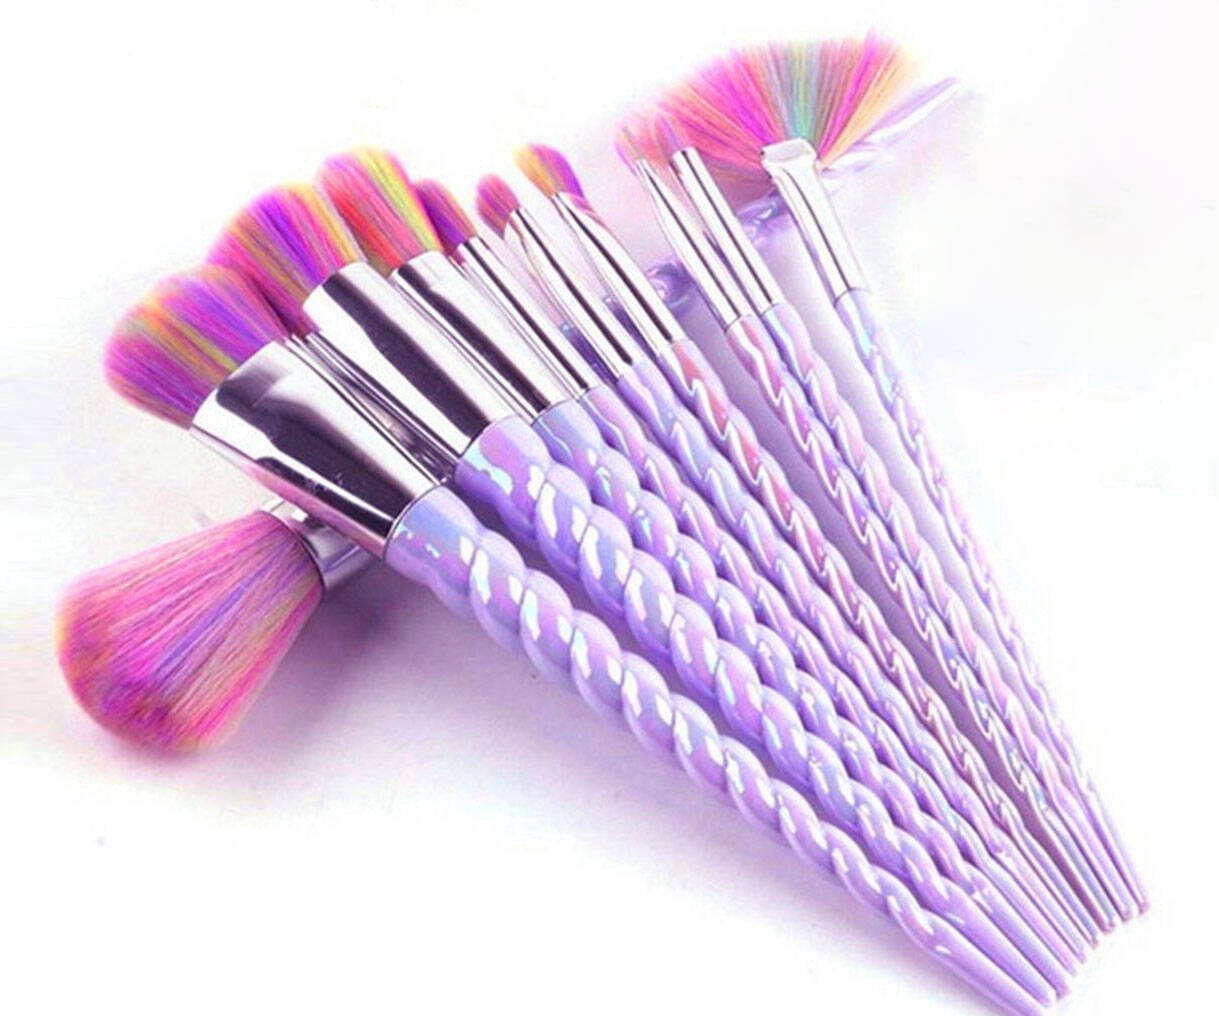 Unicorn Horn Makeup Brushes